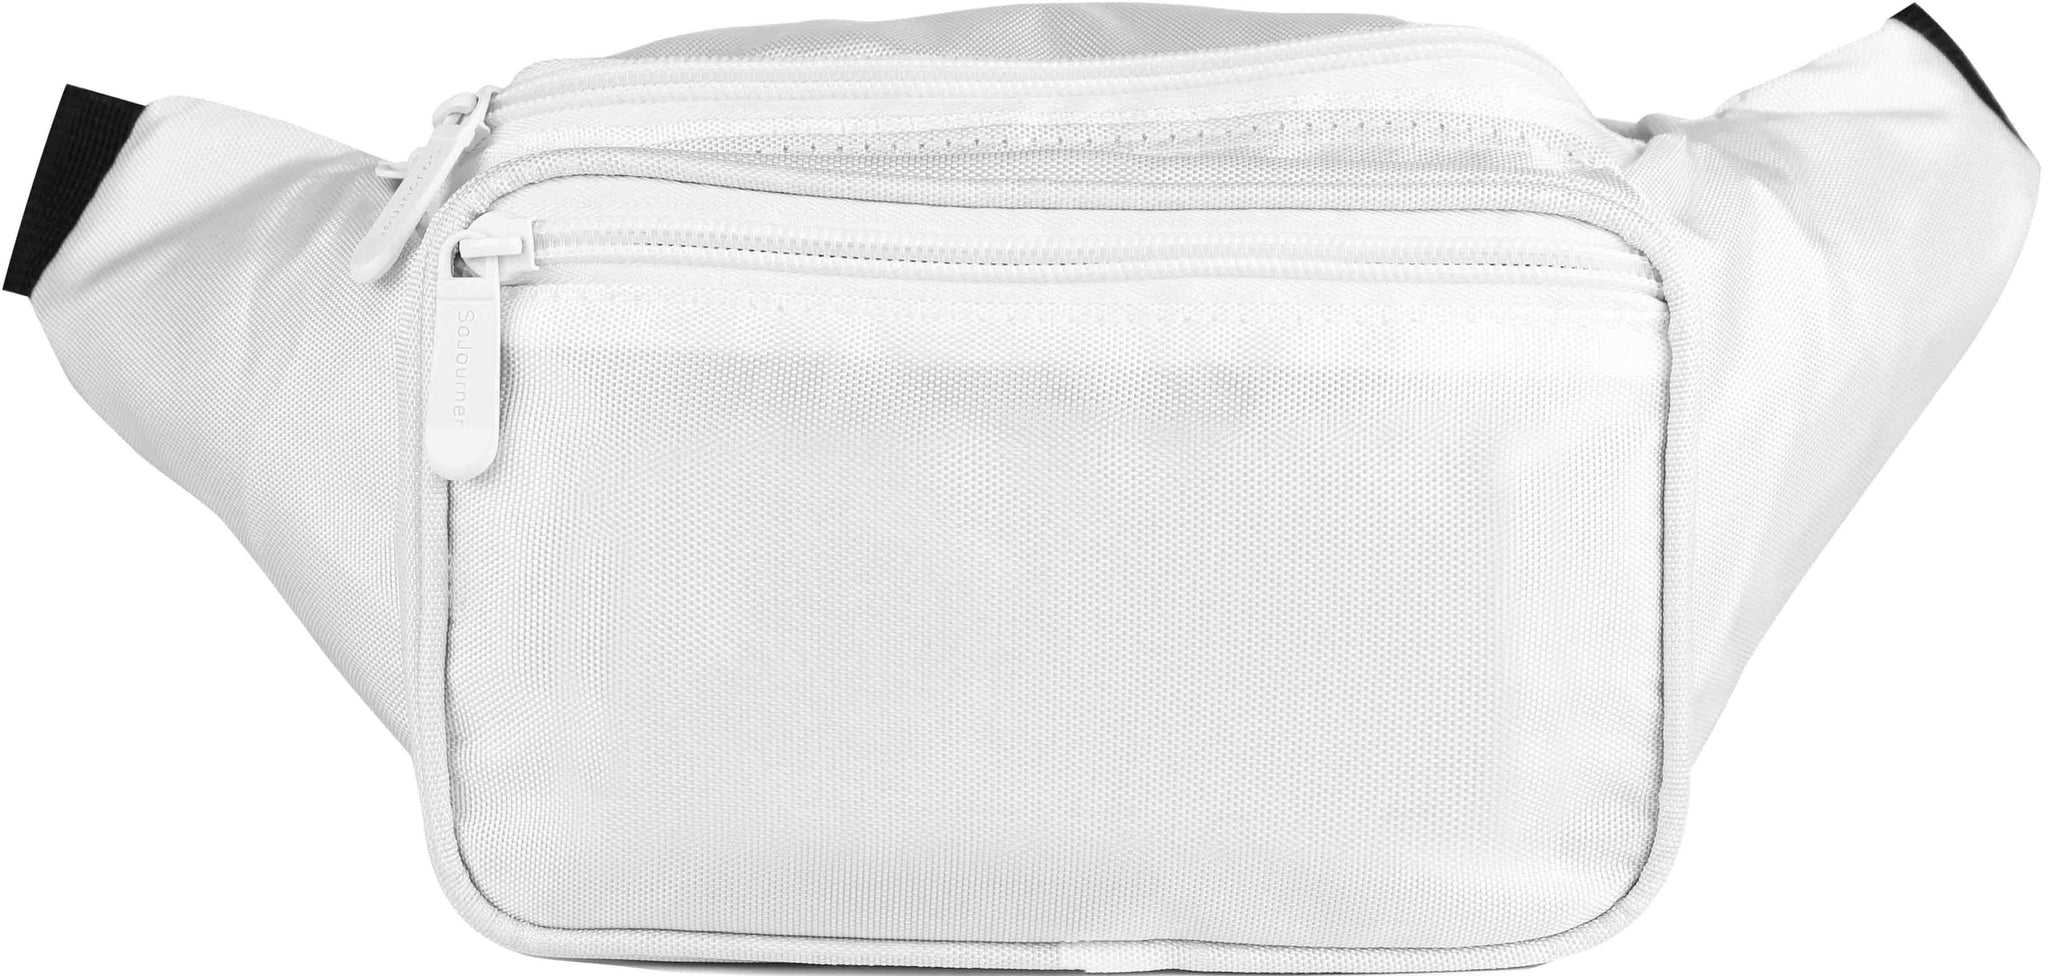 Solid Color Fanny Pack (White)